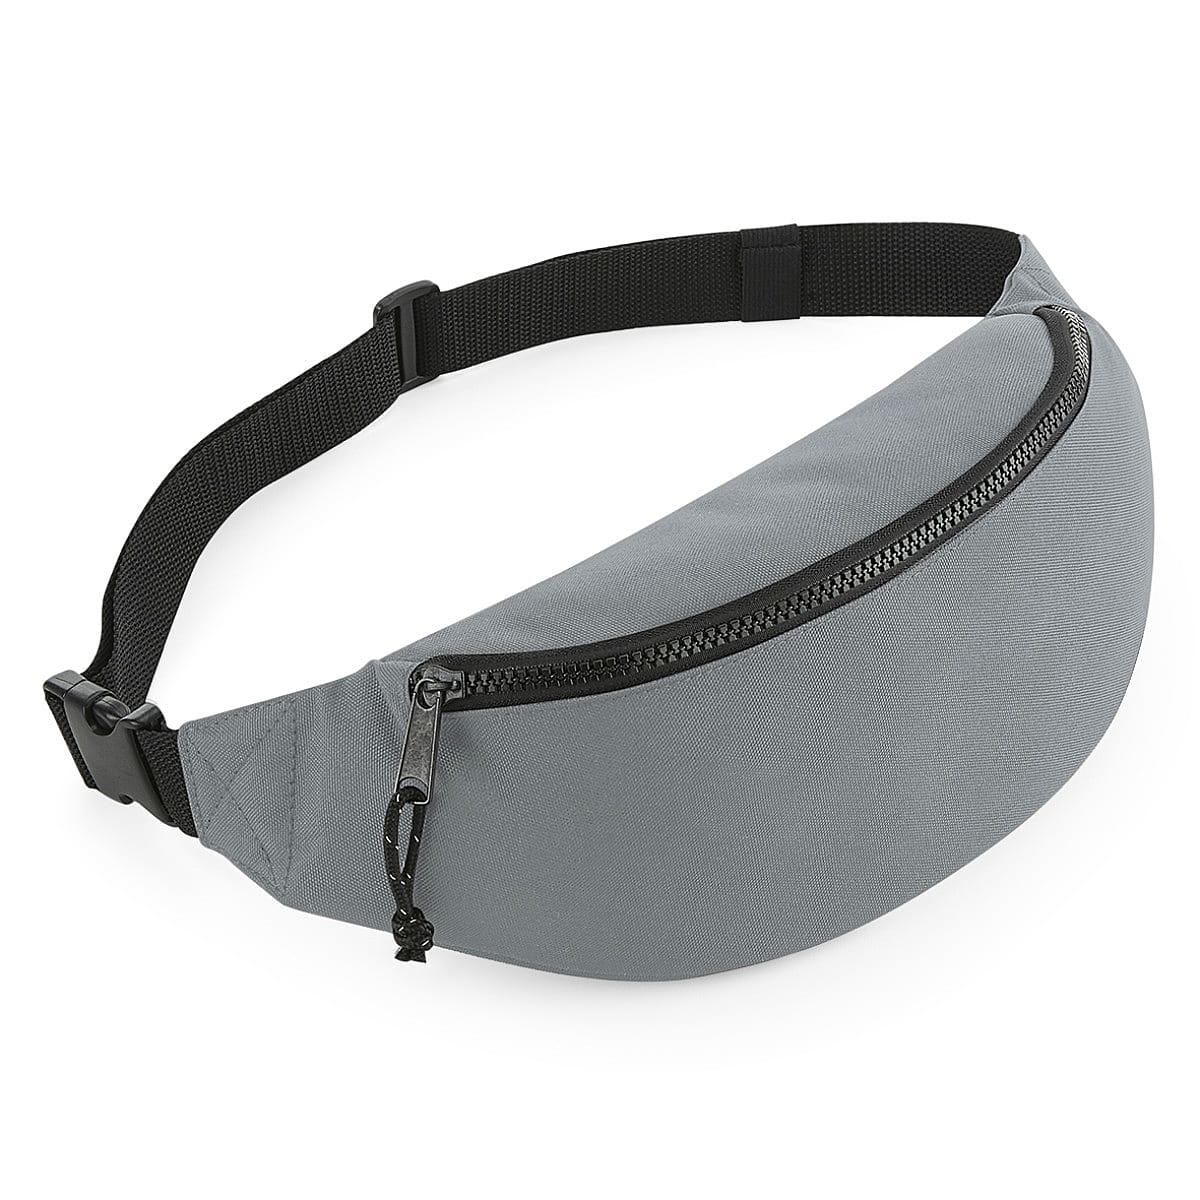 Bagbase Recycled Waistpack in Pure Grey (Product Code: BG282)